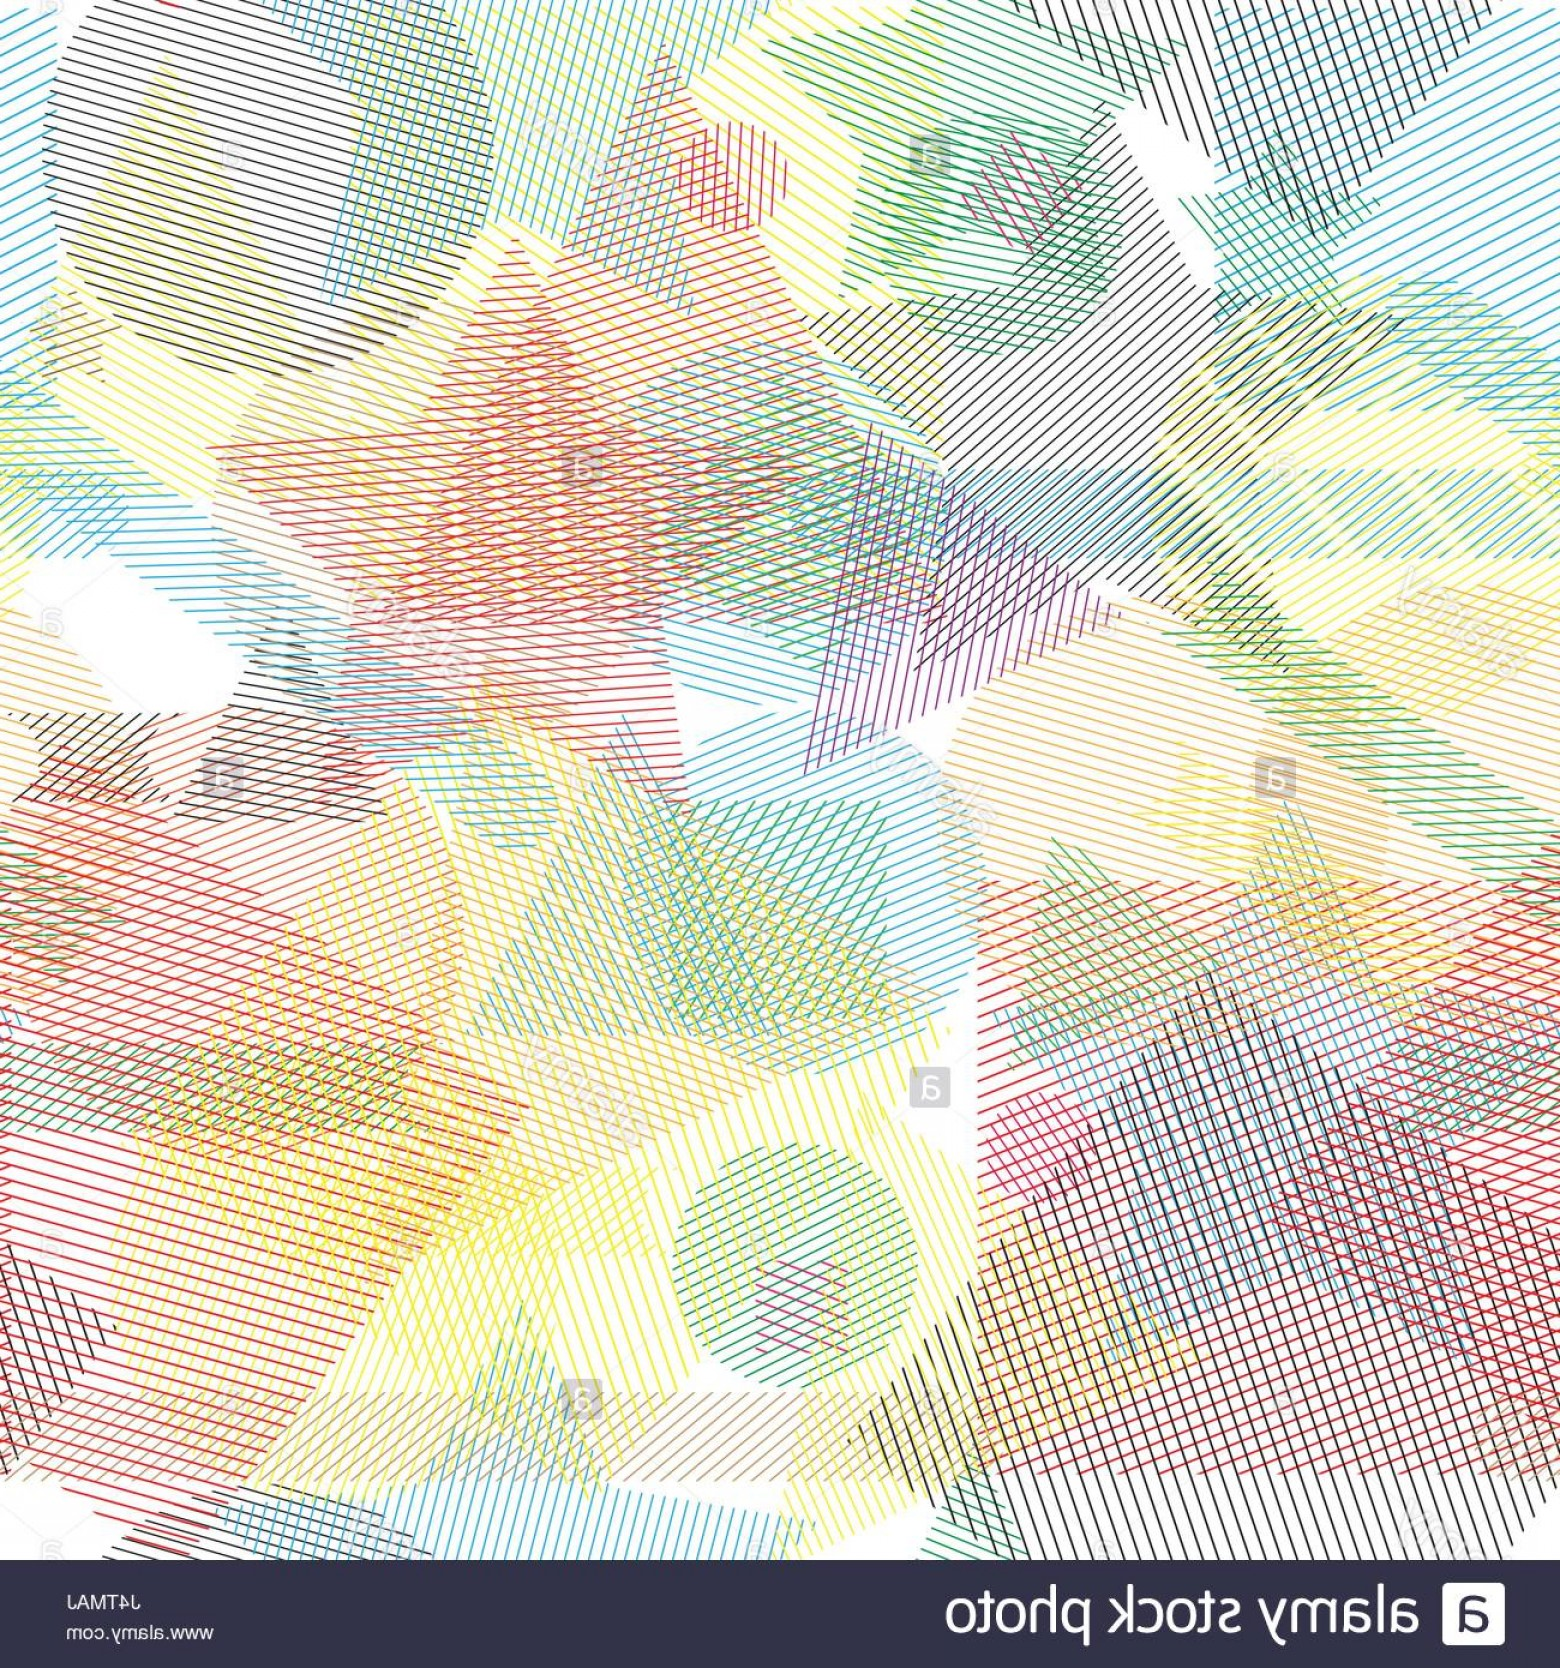 Vector Geometric Abstract Shapes Phone Wallpapers: Stock Photo Vector Abstract Wallpaper Seamless Pattern With Geometric Shapes